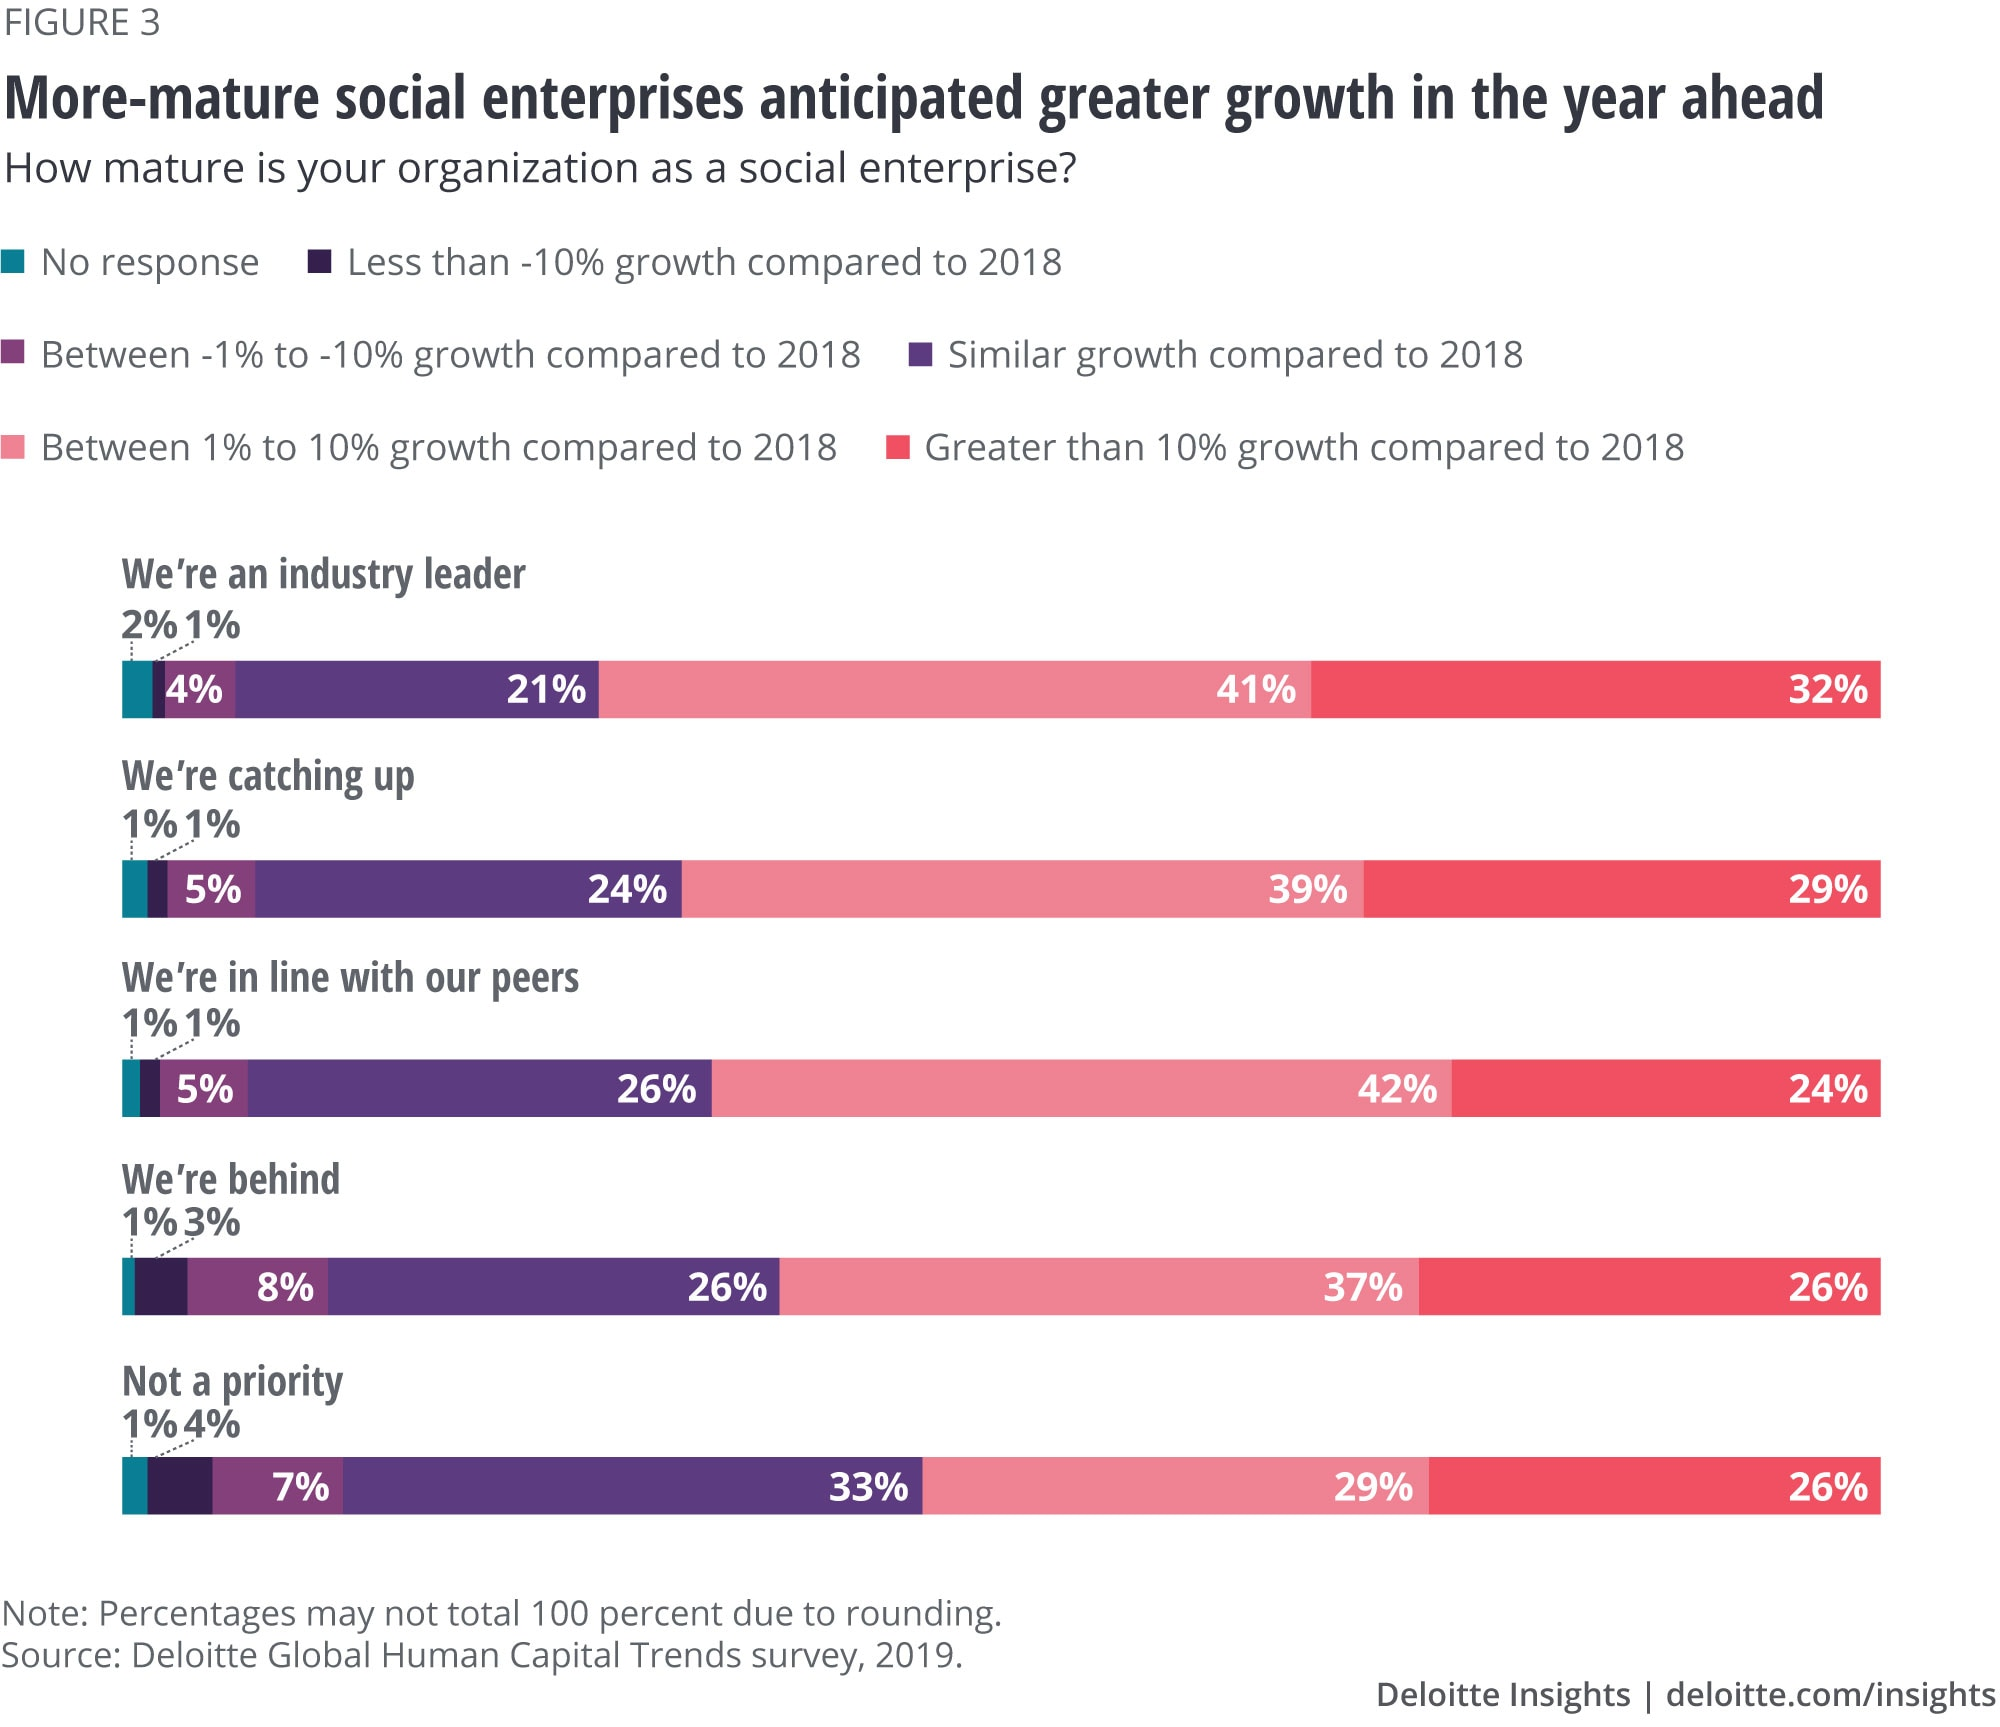 More-mature social enterprises anticipated greater growth in the year ahead